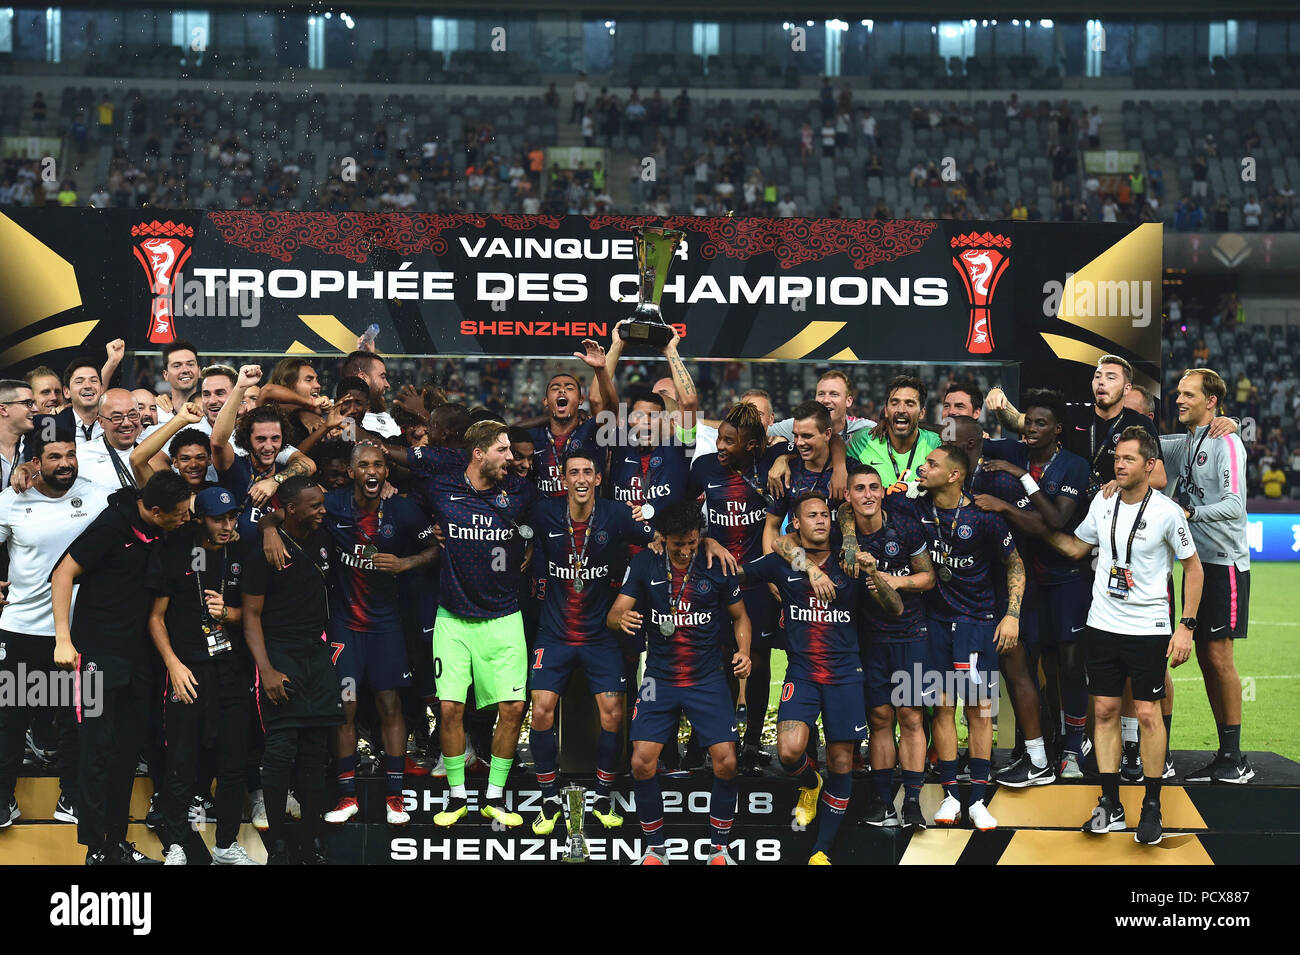 Shenzhen, China's Guangdong Province. 4th Aug, 2018. Team members of Paris Saint-Germain's celebrate with the trophy after winning the French Trophy of Champions football match between Monaco and Paris Saint-Germain at Universiade Stadium in Shenzhen, south China's Guangdong Province, on Aug. 4, 2018. Paris Saint-Germain won 4-0. Credit: Mao Siqian/Xinhua/Alamy Live News - Stock Image